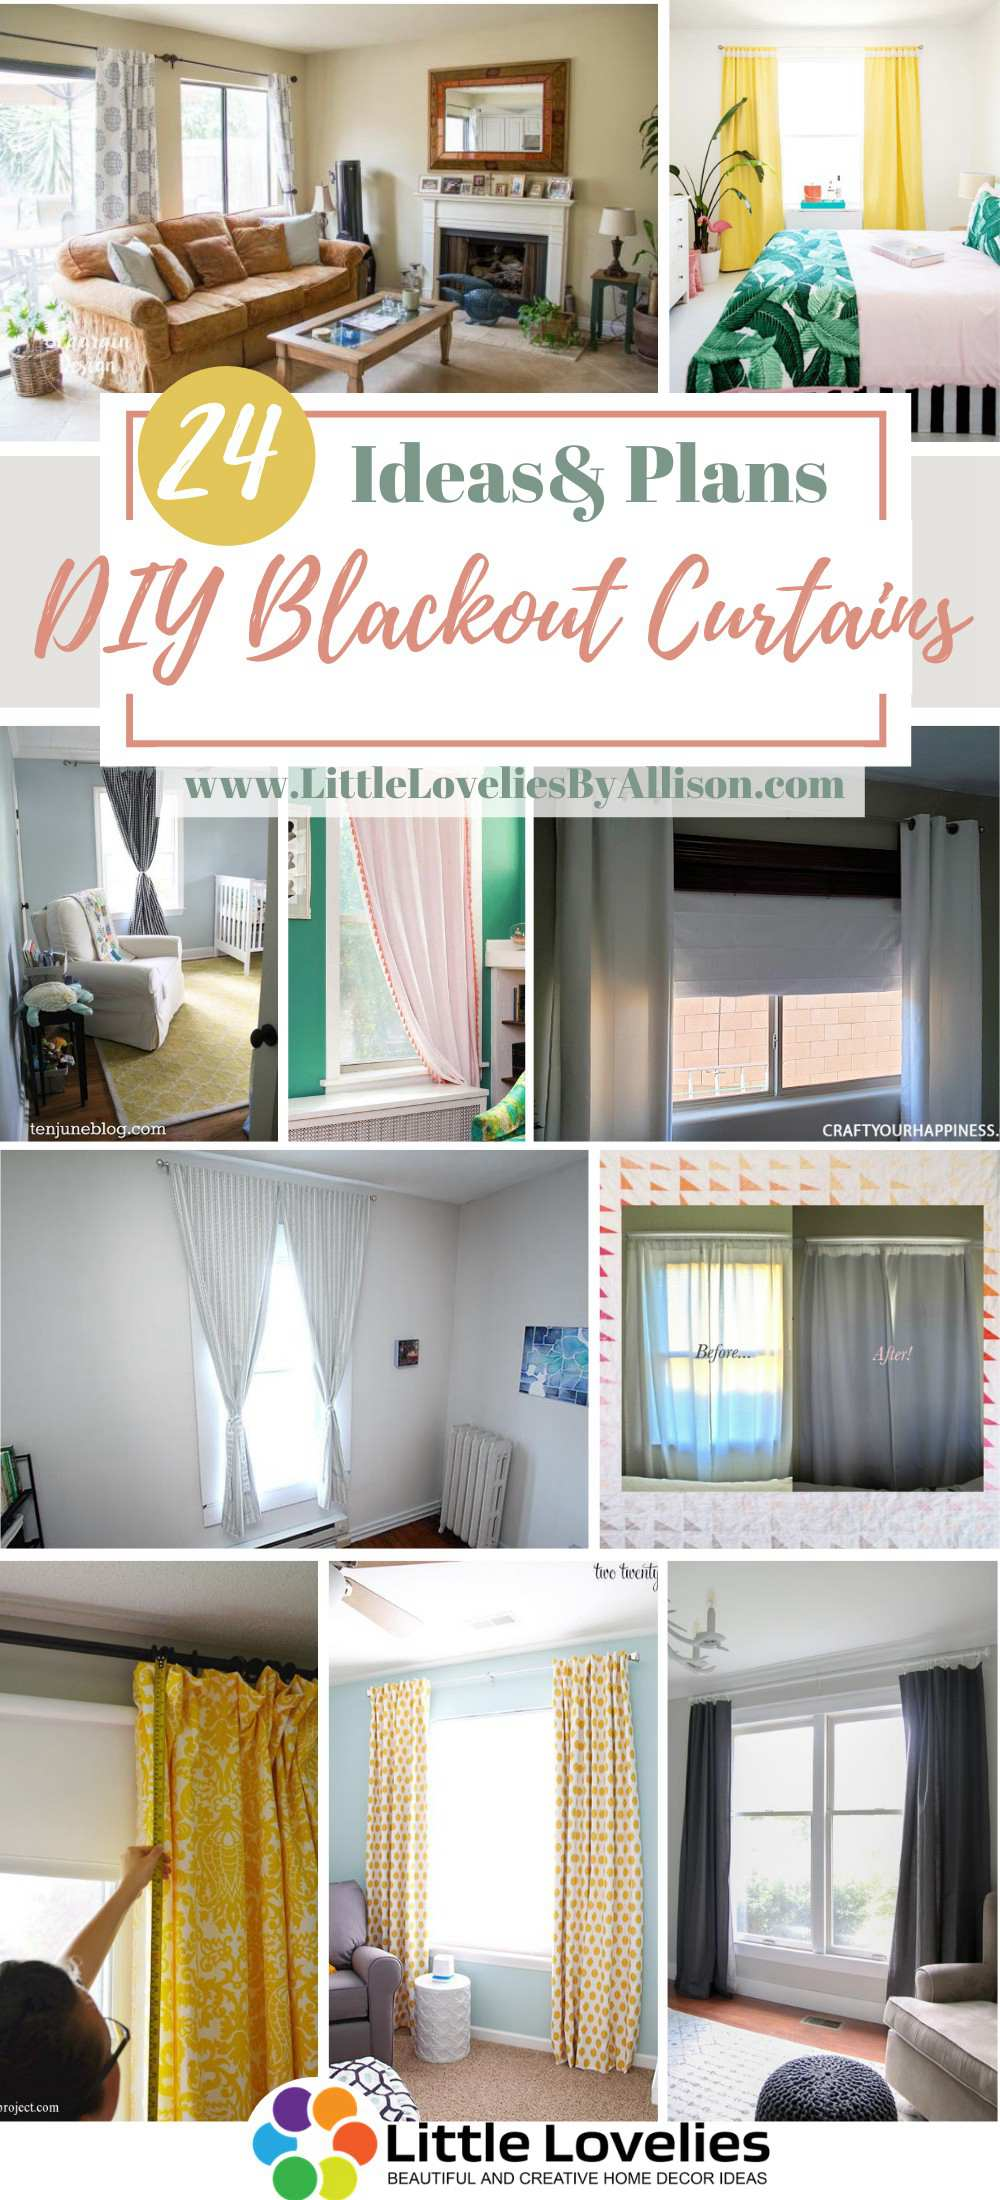 24 Homemade Blackout Curtains Ideas You Can Diy Easily